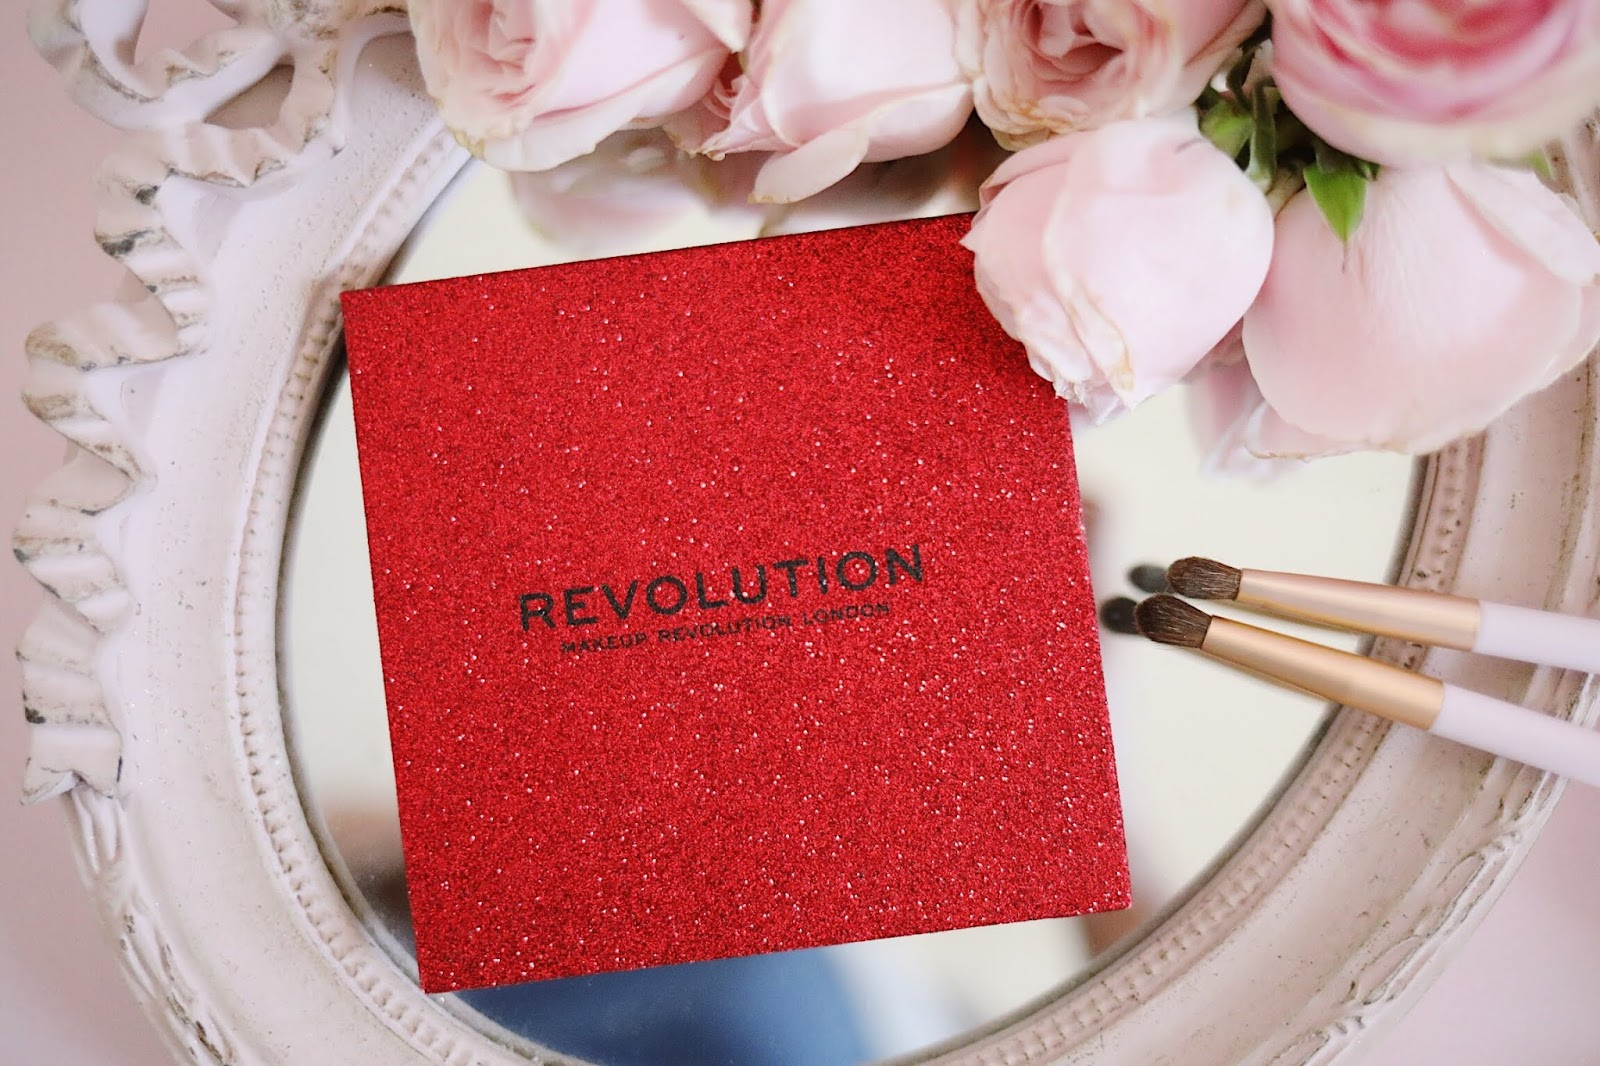 REVOLUTION  PRESSED GLITTER PALETTE,REVOLUTION  PRESSED GLITTER PALETTE HOT PURSUIT, HOT PURSUIT , MAKEUP REVOLUTION , REVOLUTION MAKEUP LONDON , DOLLAR MAKEUP,ROSEMADEMOISELLE , ROSE MADEMOISELLE , BLOG BEAUTÉ , PARIS , REVUE , AVIS , SWATCHS , GLITTERS , GLITTERMAKEUP , MAQUILLAGE PAILLETTES ,